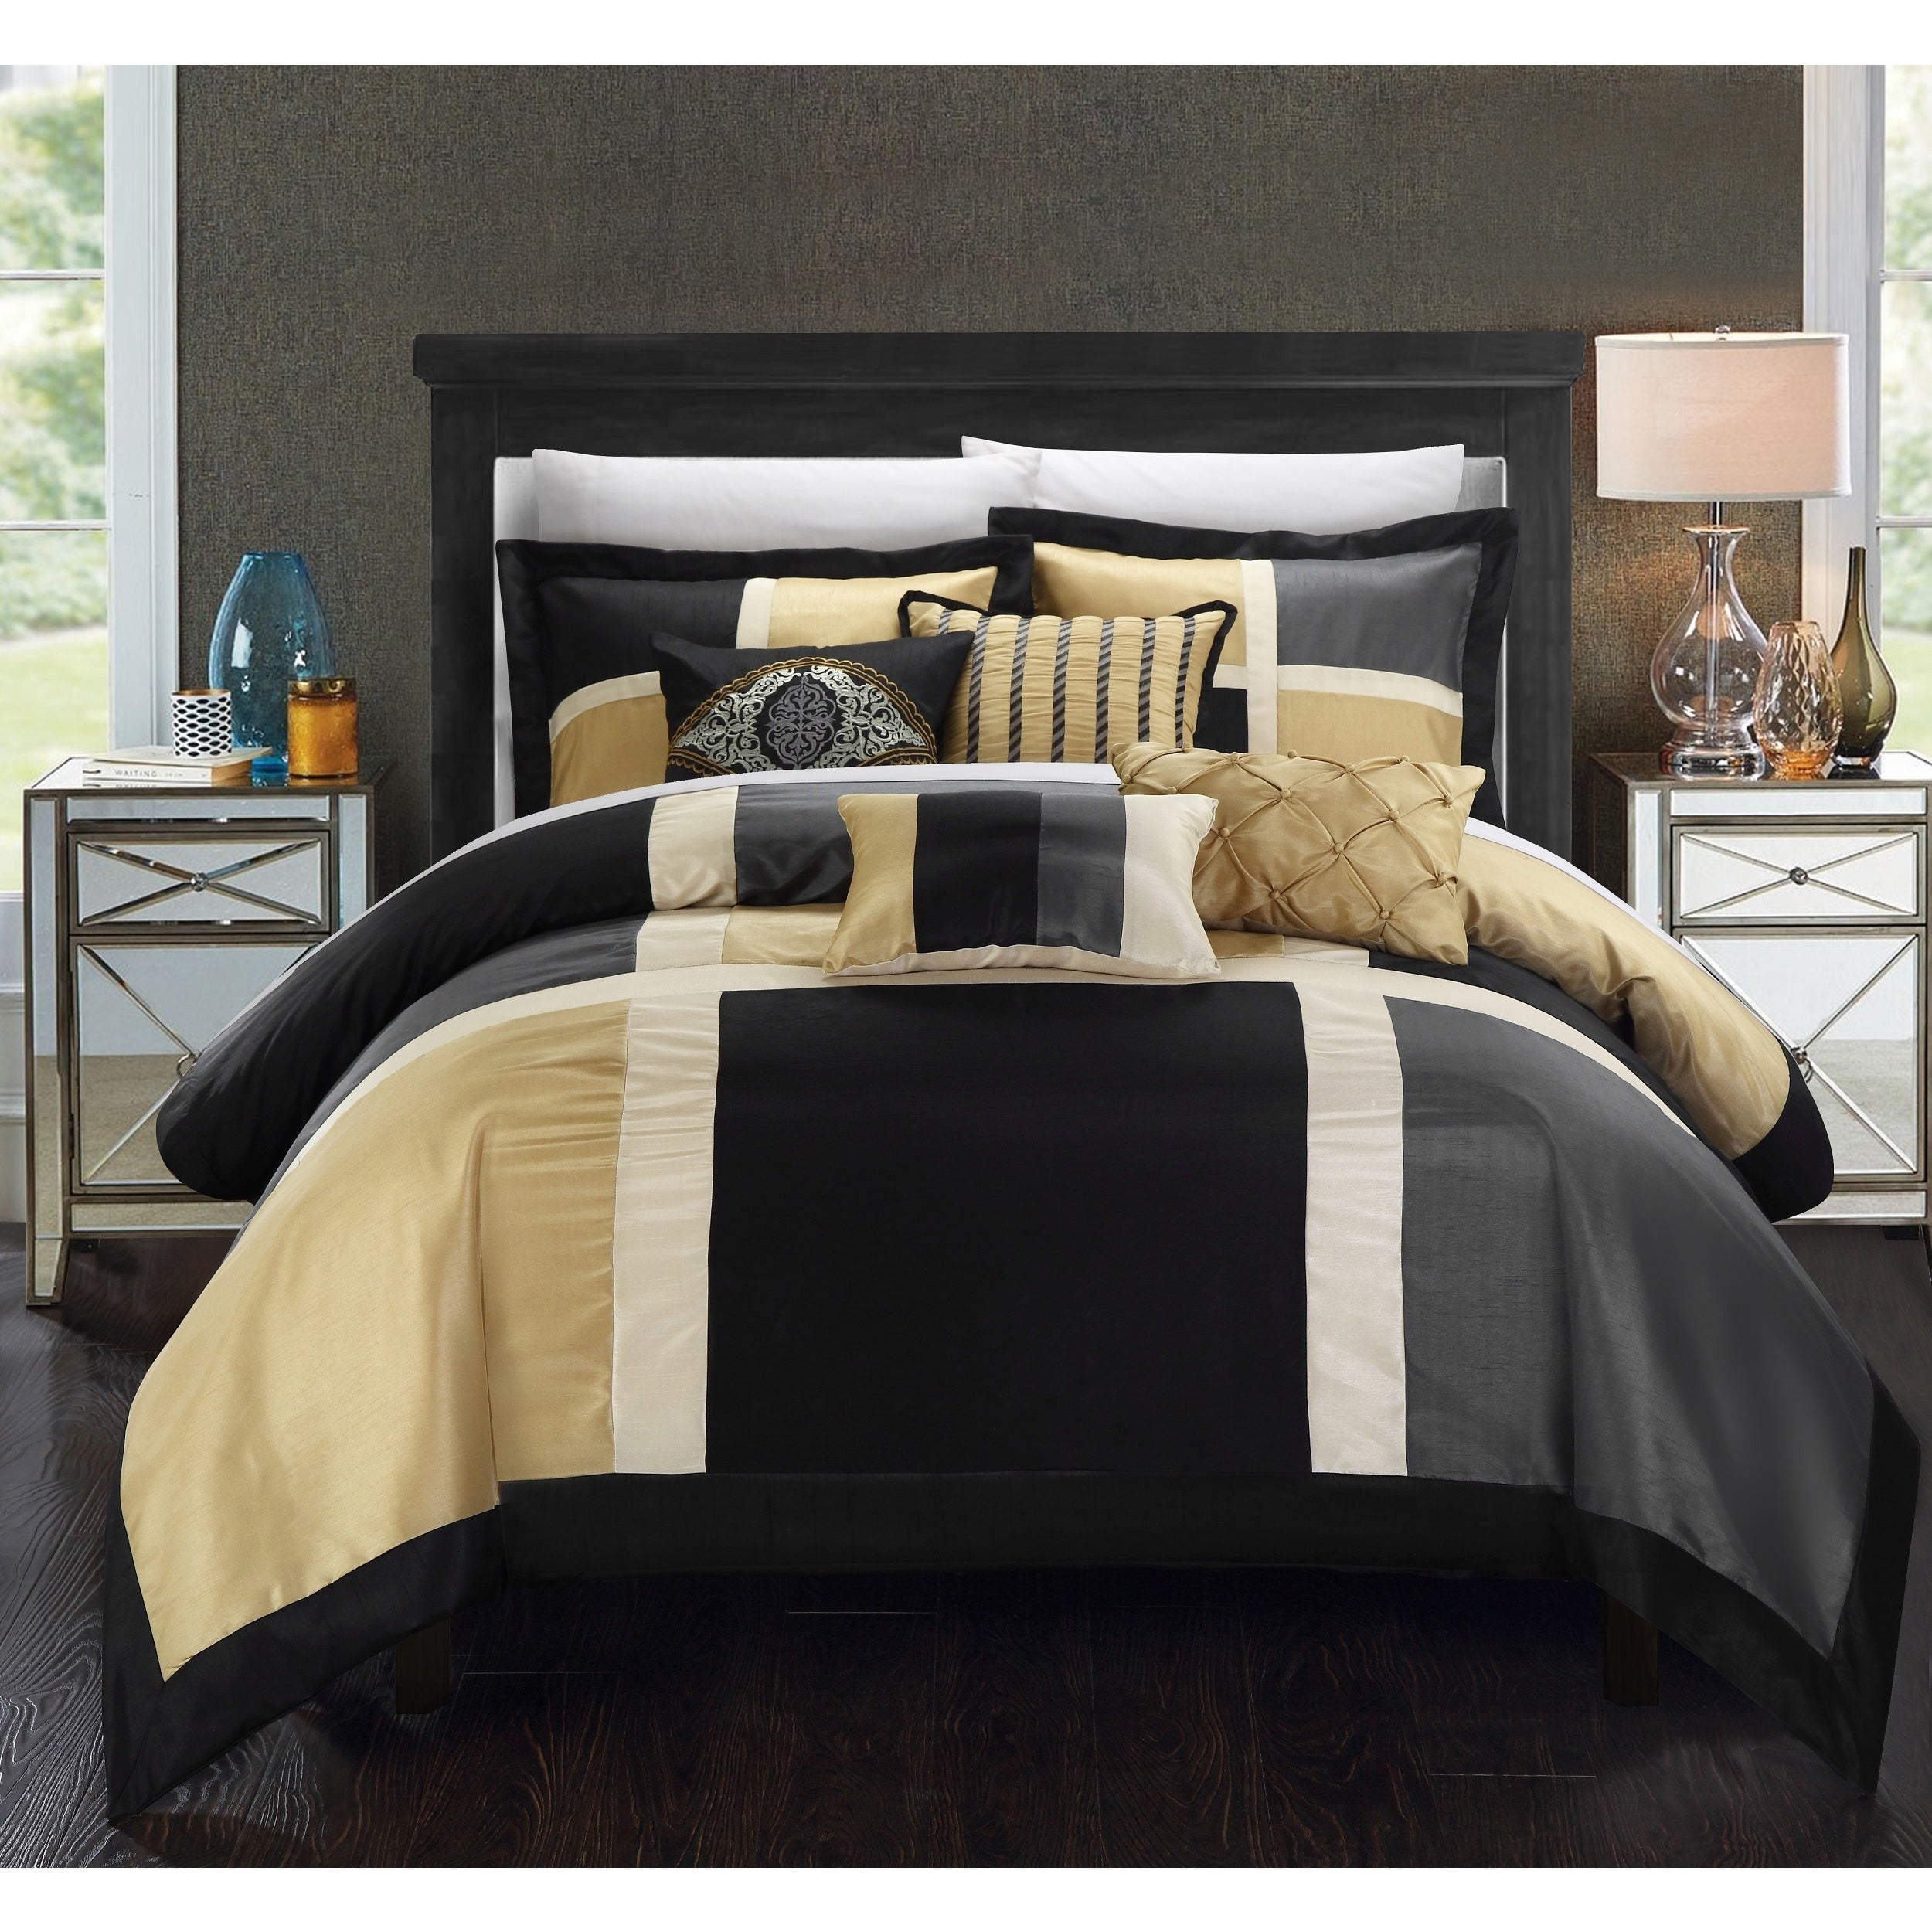 reversible sheet madison overstock bedding and park trellis comforter complete pattern com grey essentials product almaden cotton set bed bath